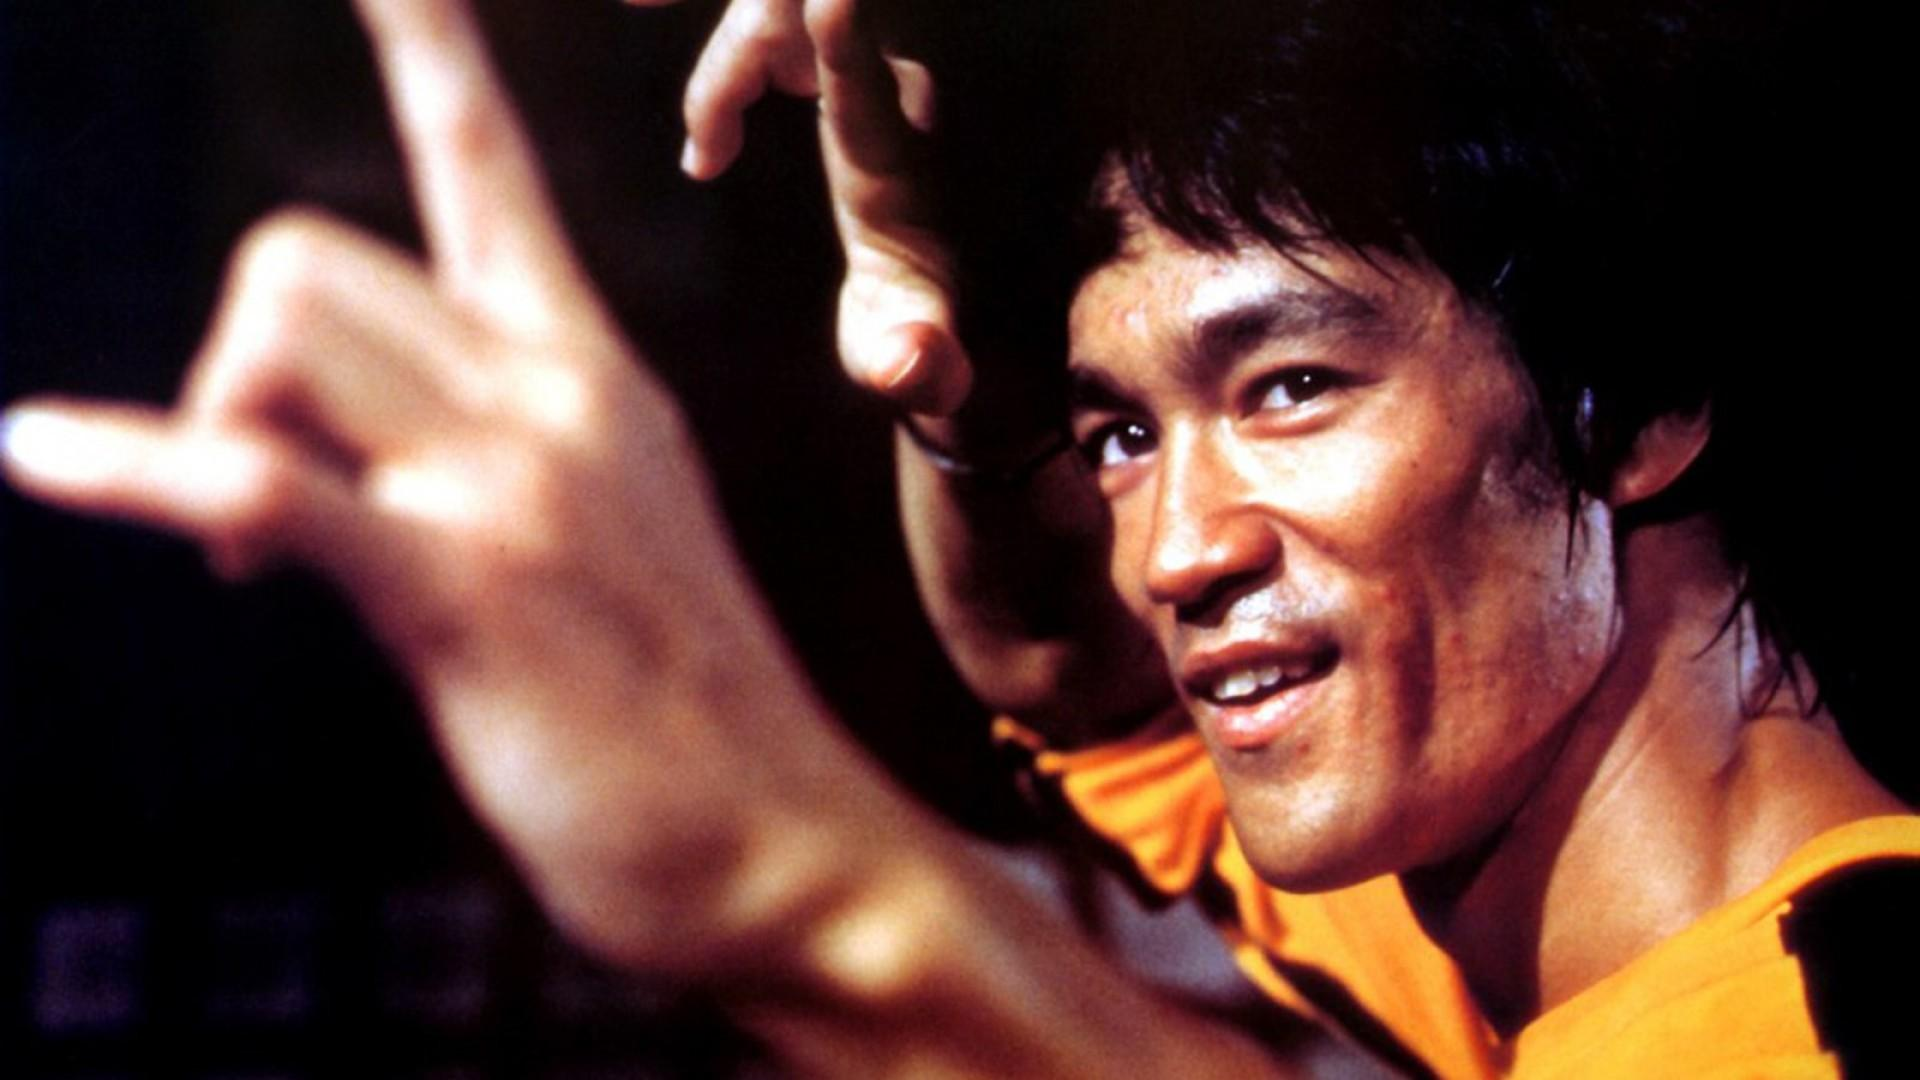 bruce-lee-images-HD-Buzz-×768-Of-Bruce-Lee-Ad-wallpaper-wpc5803063